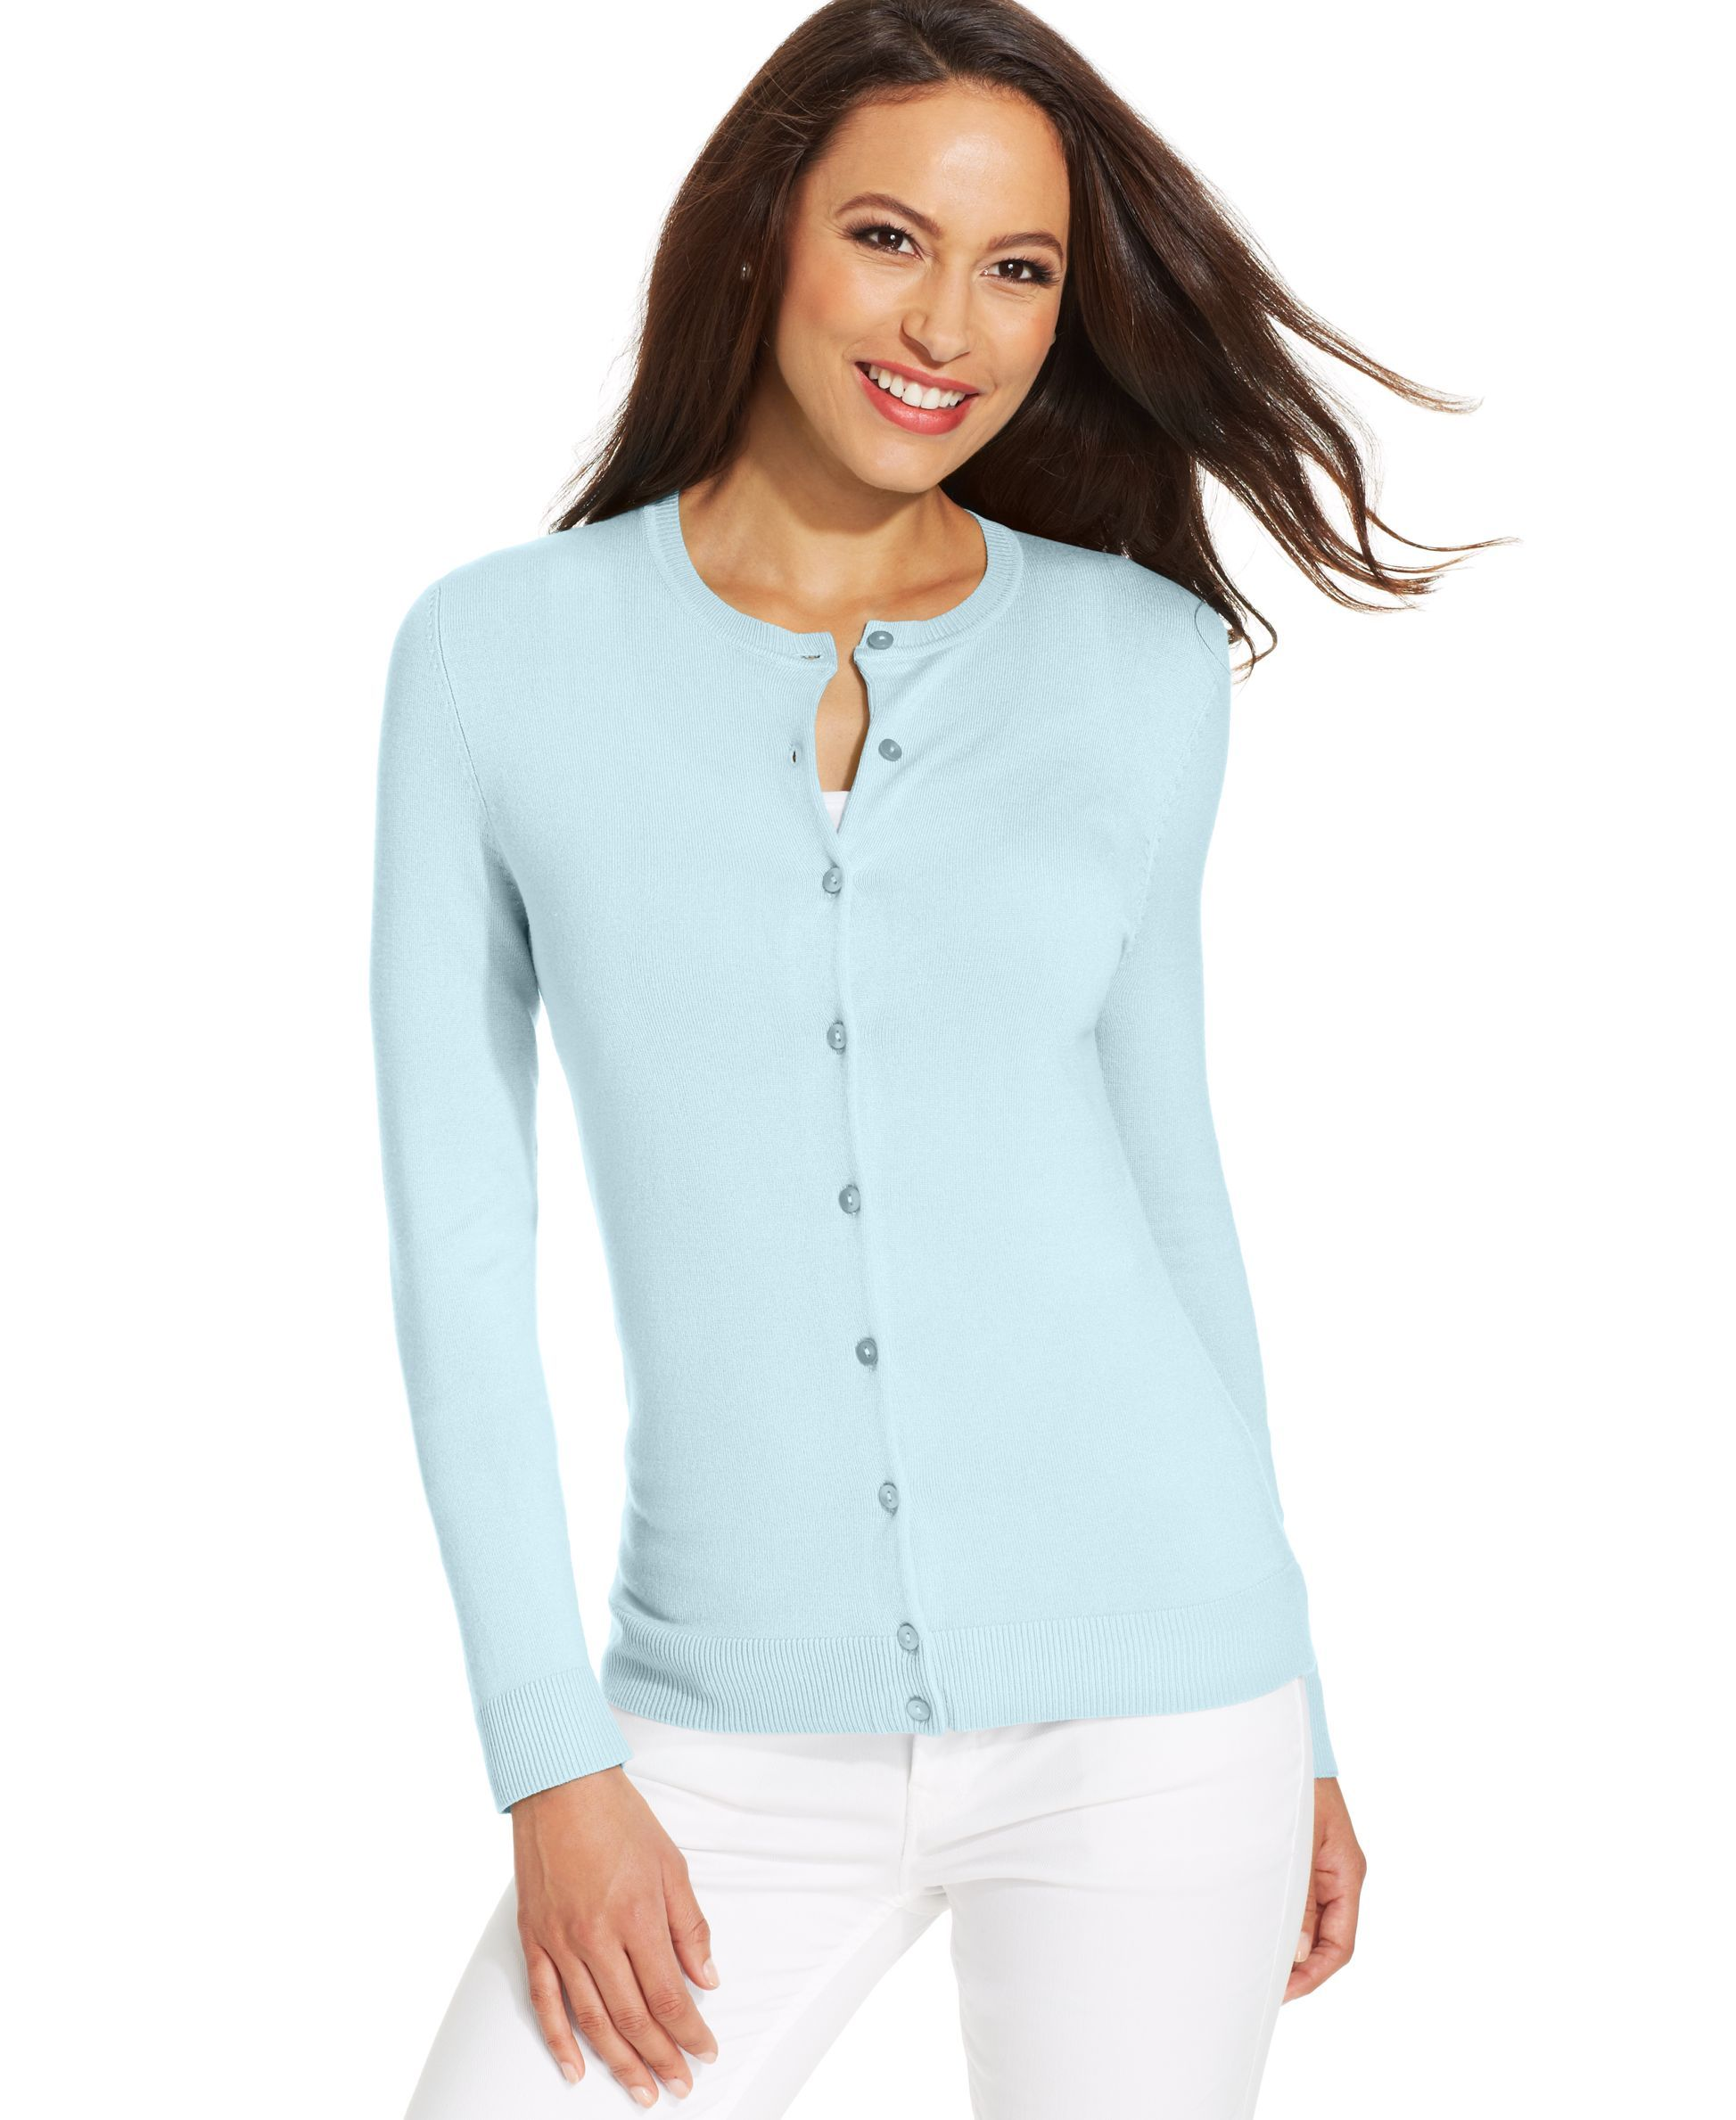 Charter Club Crew-Neck Cardigan, Created for Macy's | Products